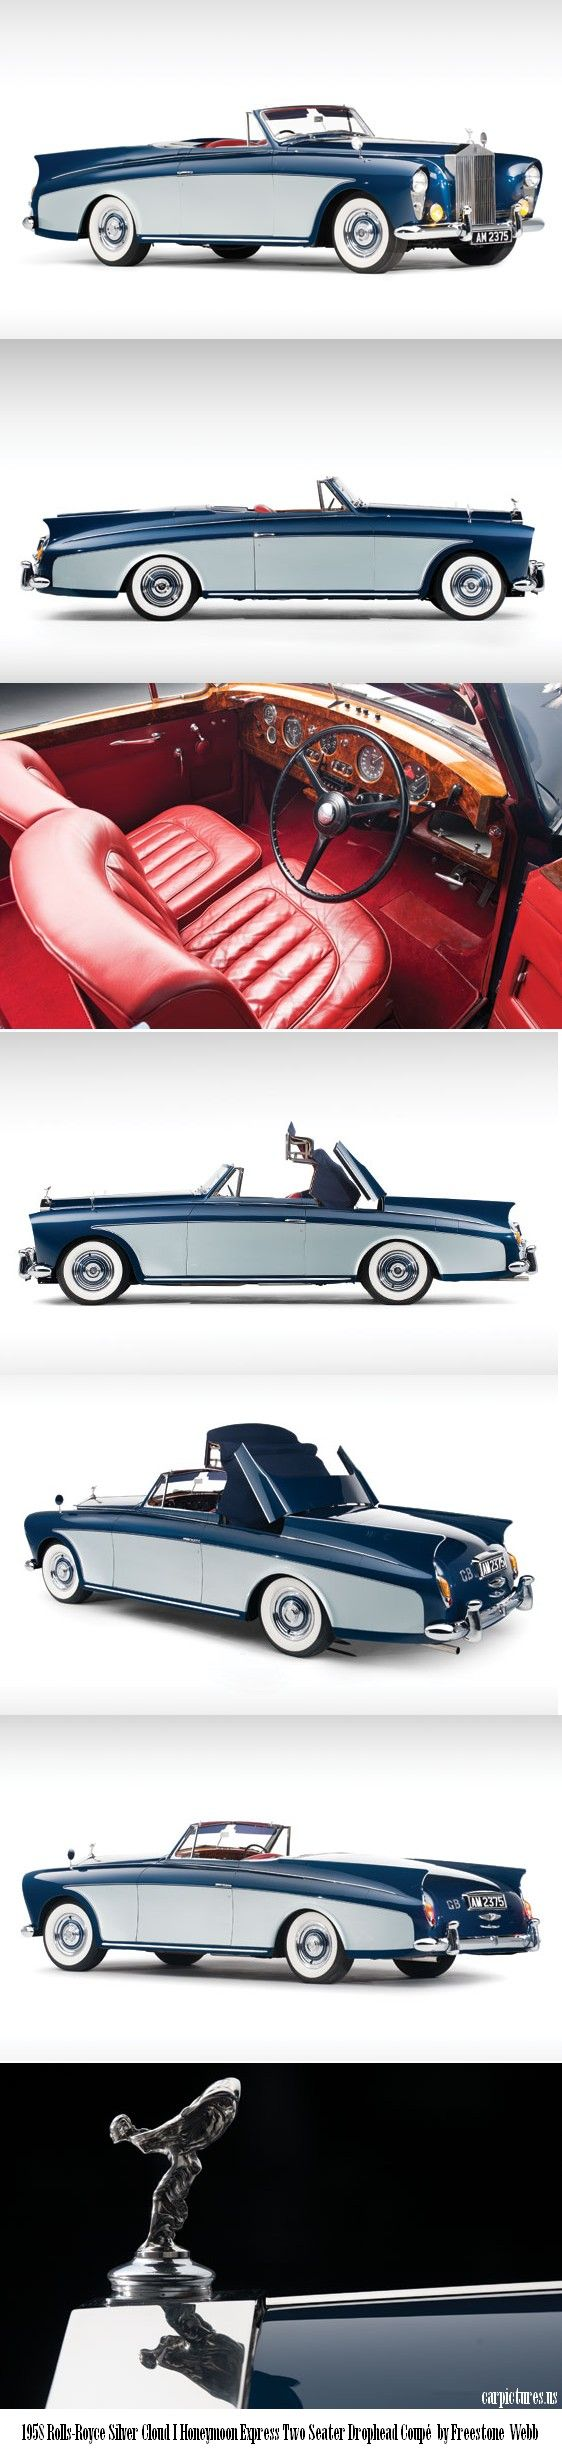 1958 Rolls-Royce Silver Cloud I Honeymoon Express Two Seater Drophead Coupé by Freestone  Webb